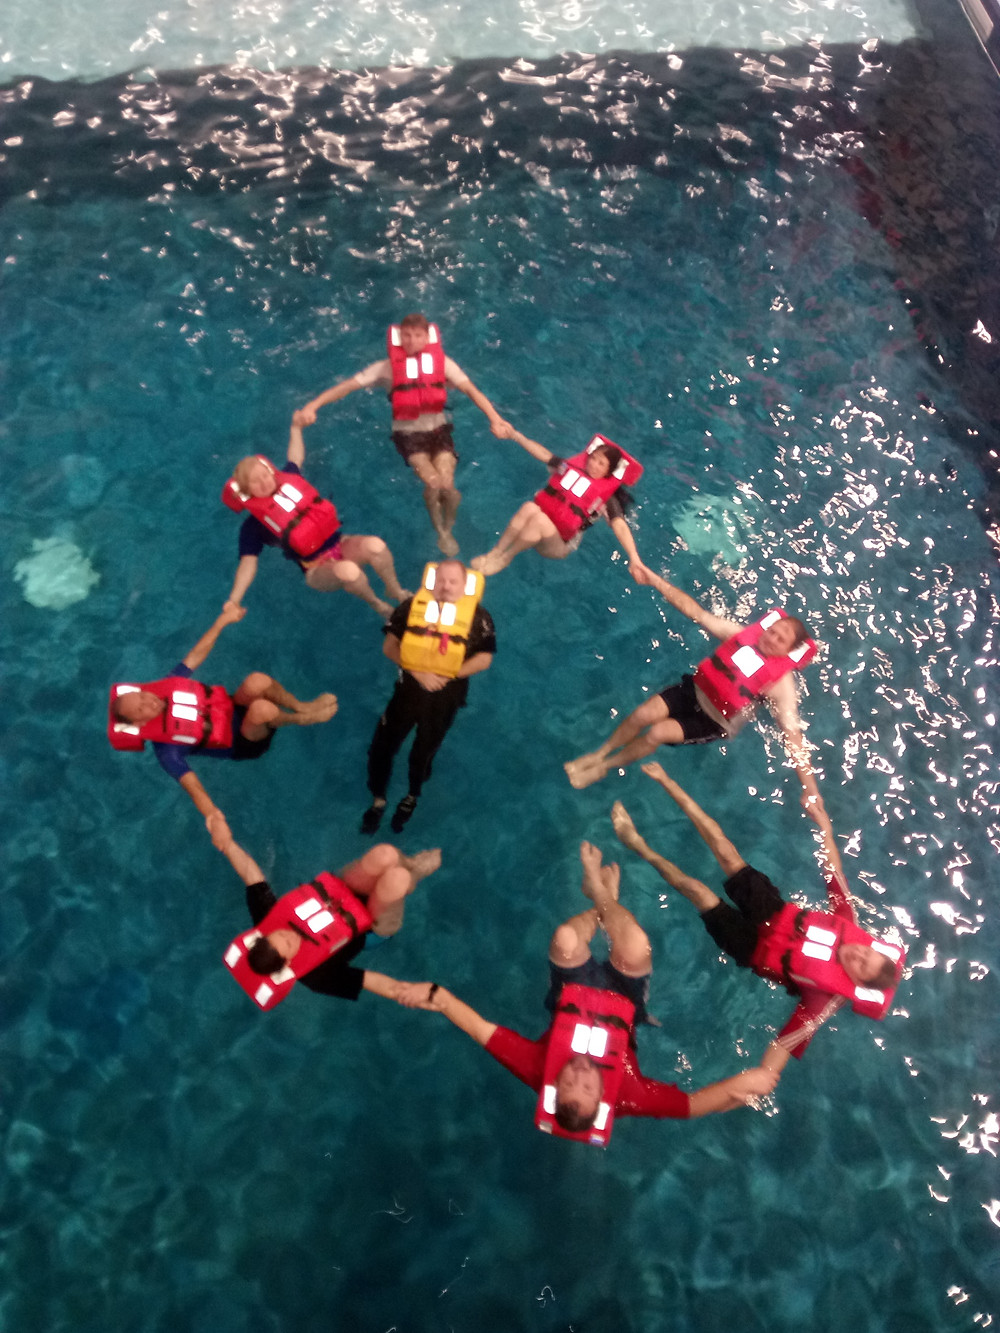 Team forming a ring of safety, in the pool.